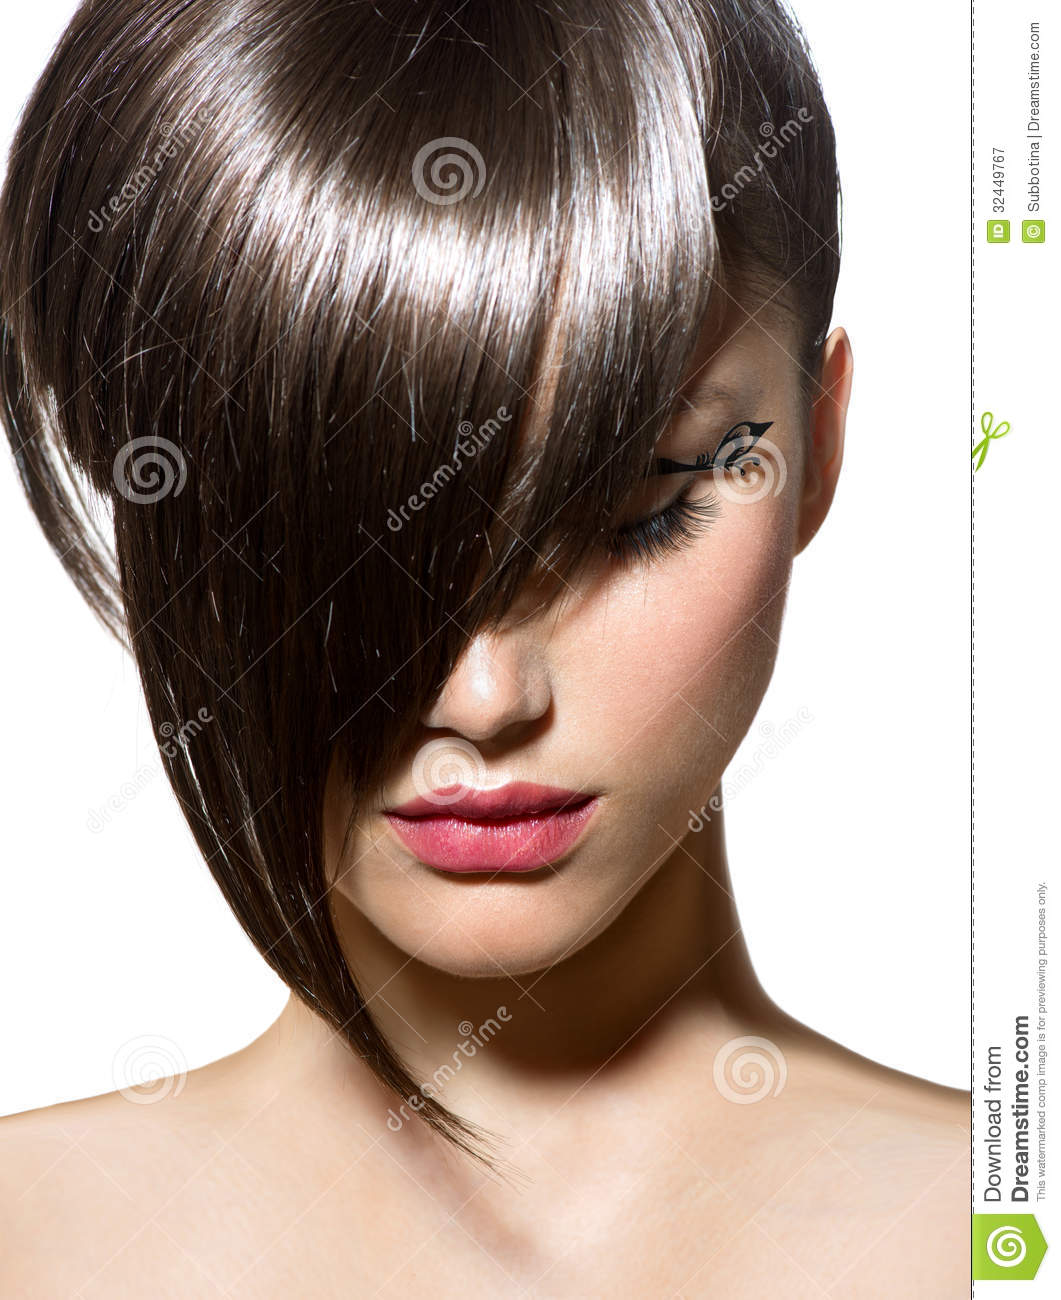 hair style imege fashion haircut royalty free stock photography image 3929